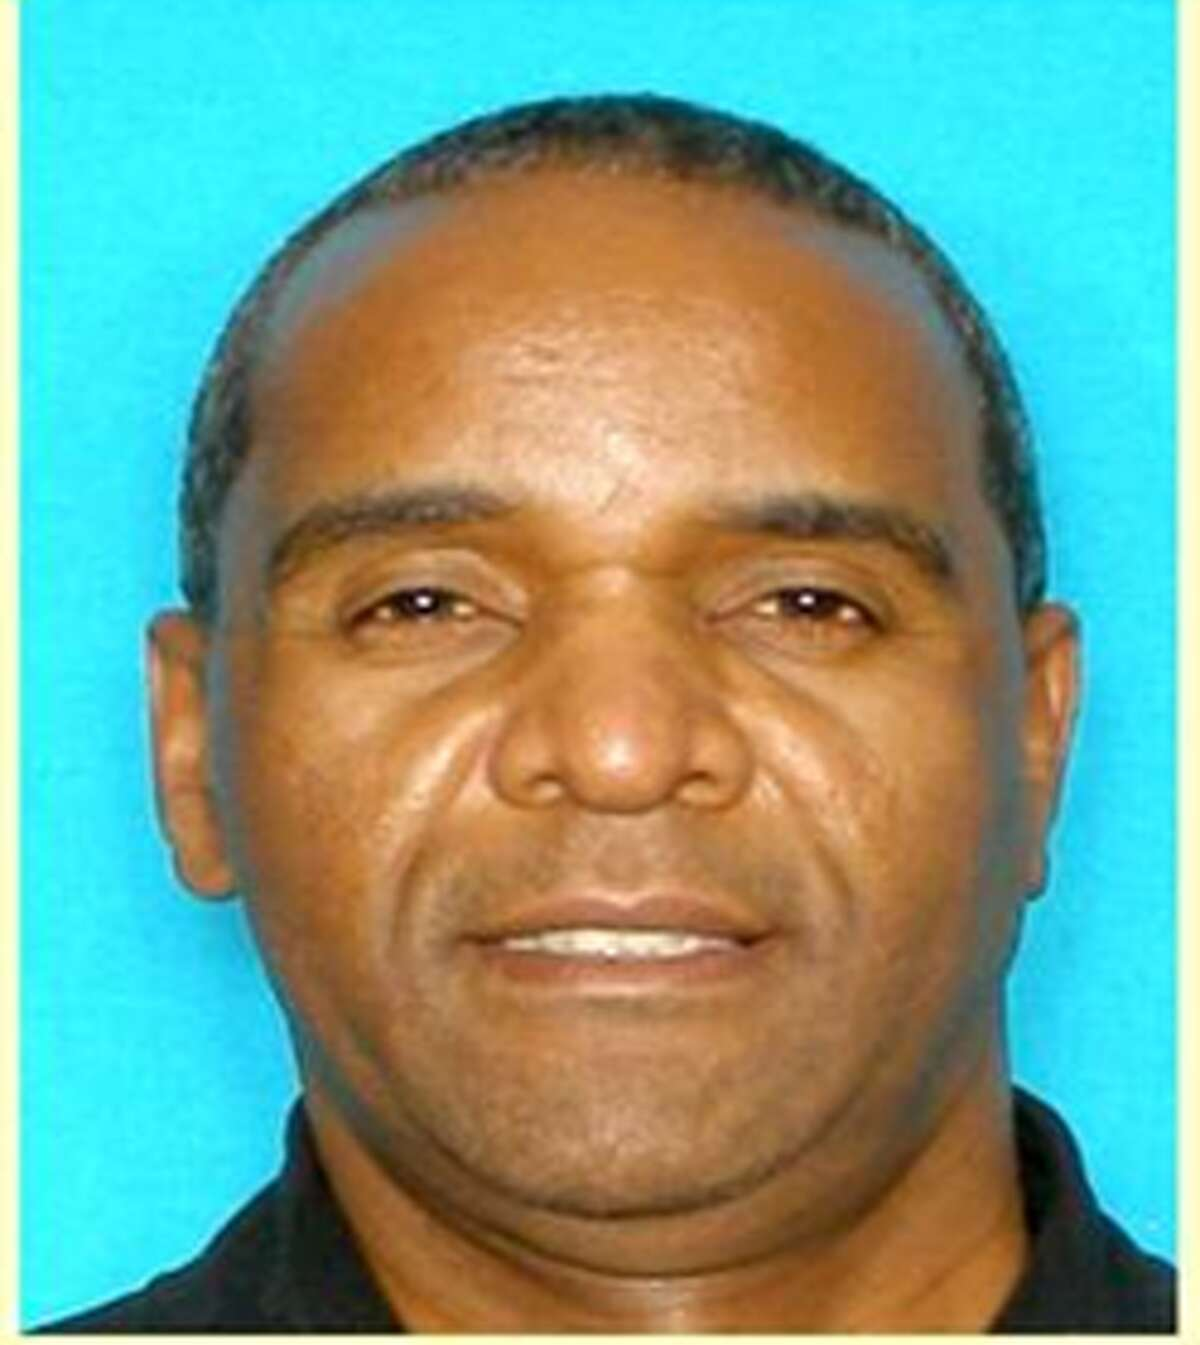 Daniel Burroughs shot himself in the head in his Fort Bend home after shooting his wife to death on Sunday, March 19, the Fort Bend County Sheriff's Office reports.